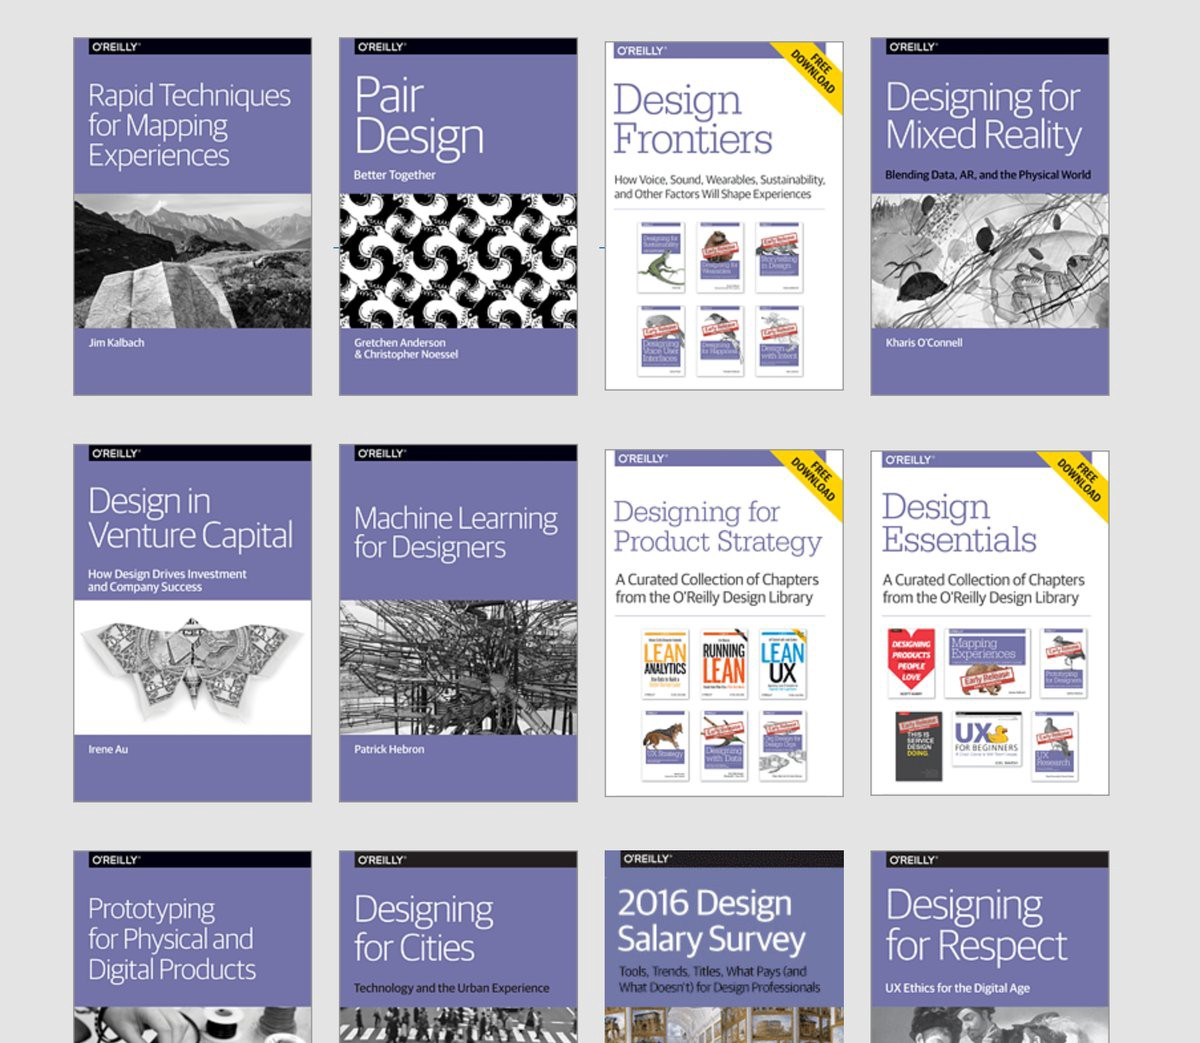 📈💭☁️ #UX #DesignThinking #IoT - Free #Design #Ebooks from O'Reilly »  #resources